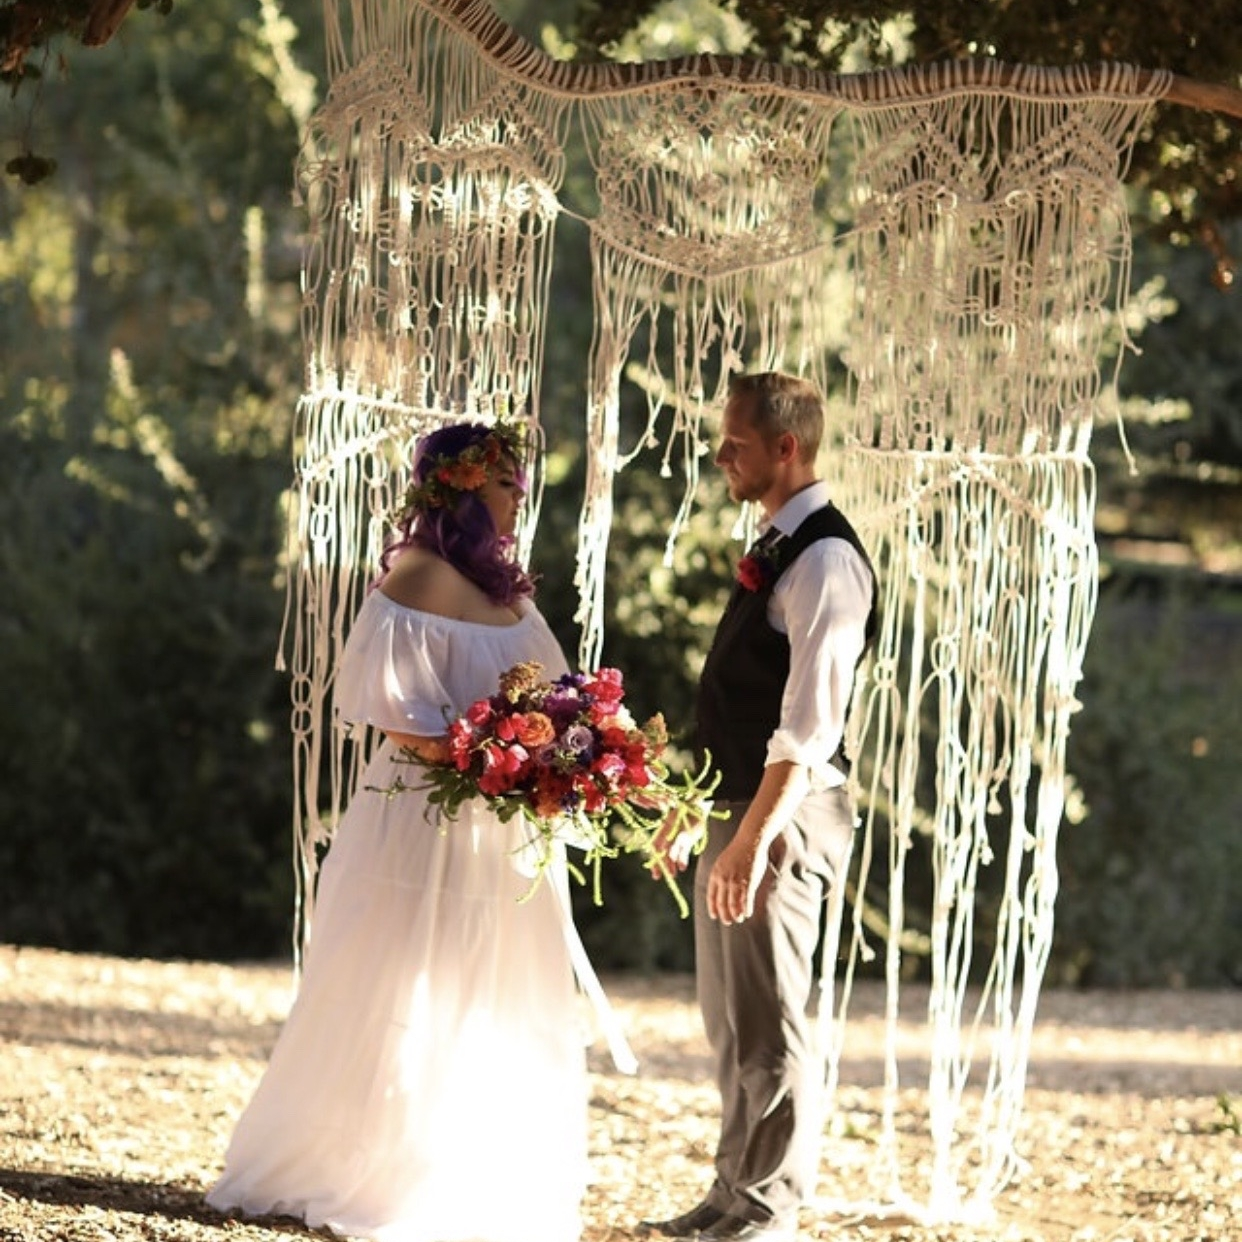 Bride and groom in front of a. macrame backdrop hanging from a tree at Chateau Adare.